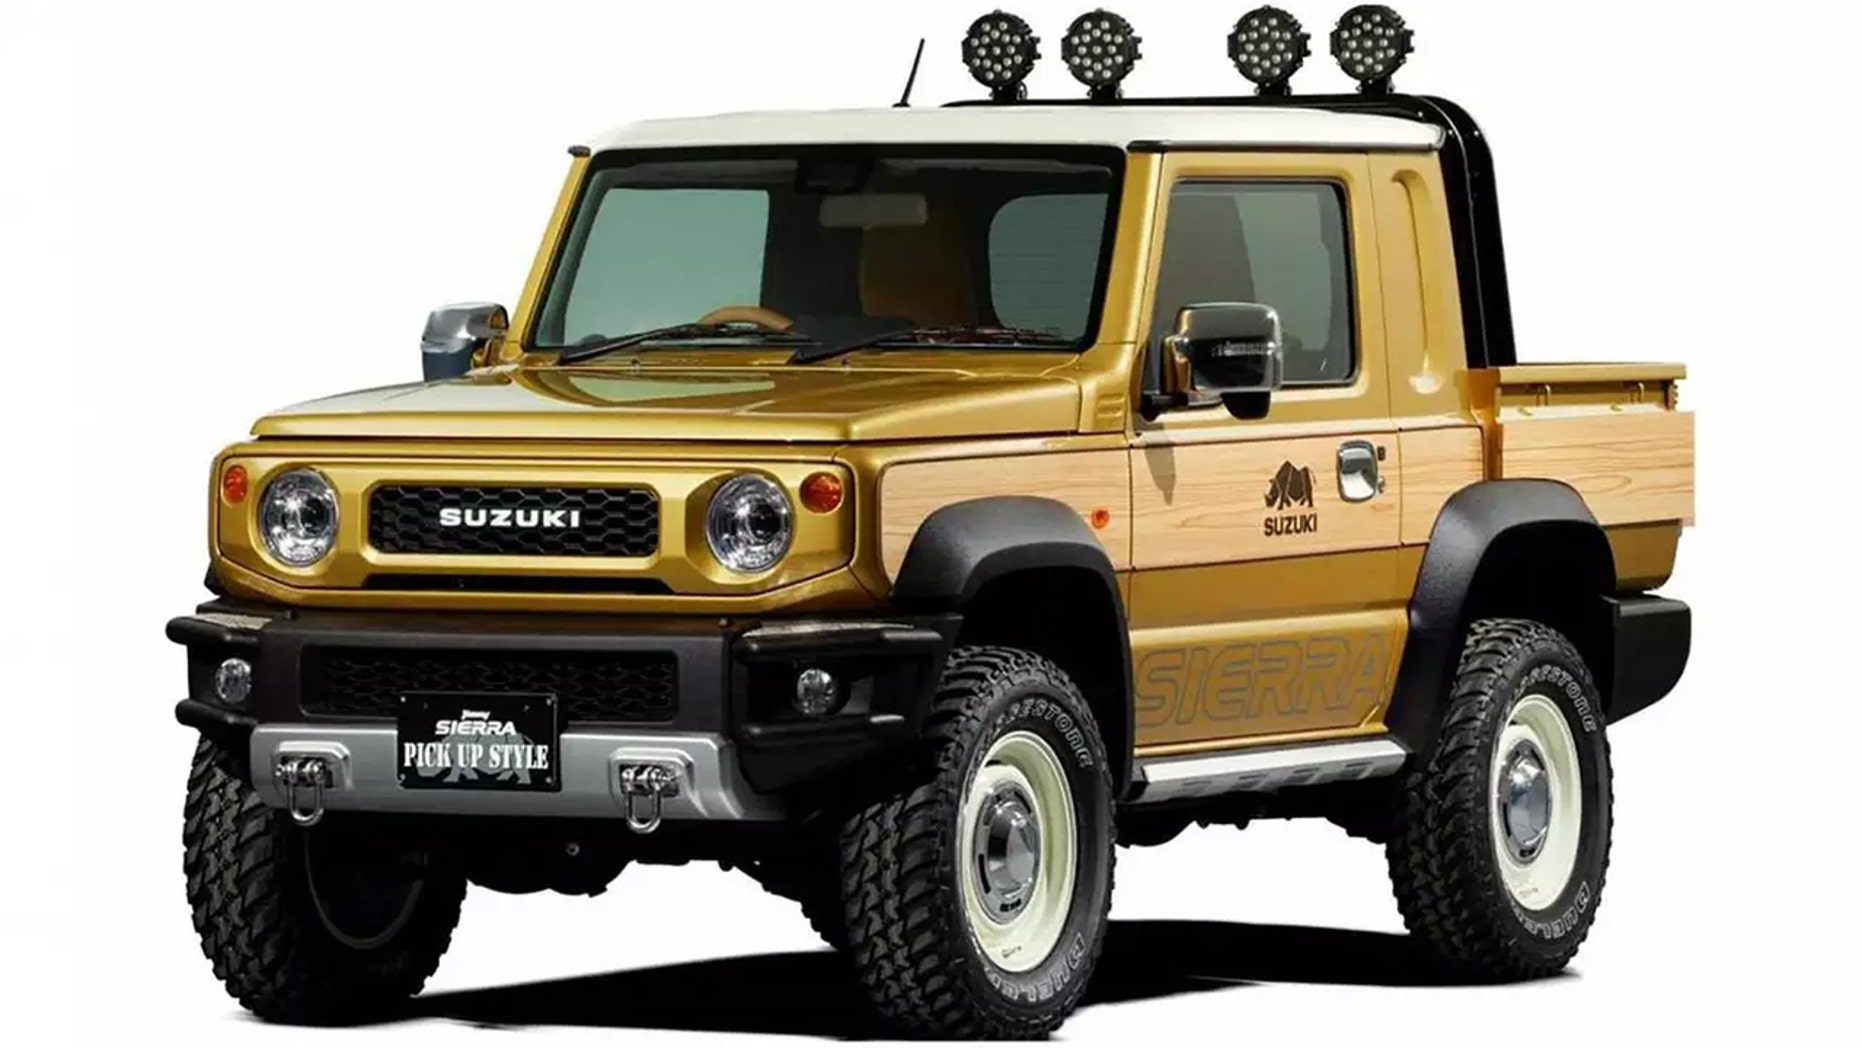 The Suzuki Samurai Pickup Is Cutest Truck You Ll See Today